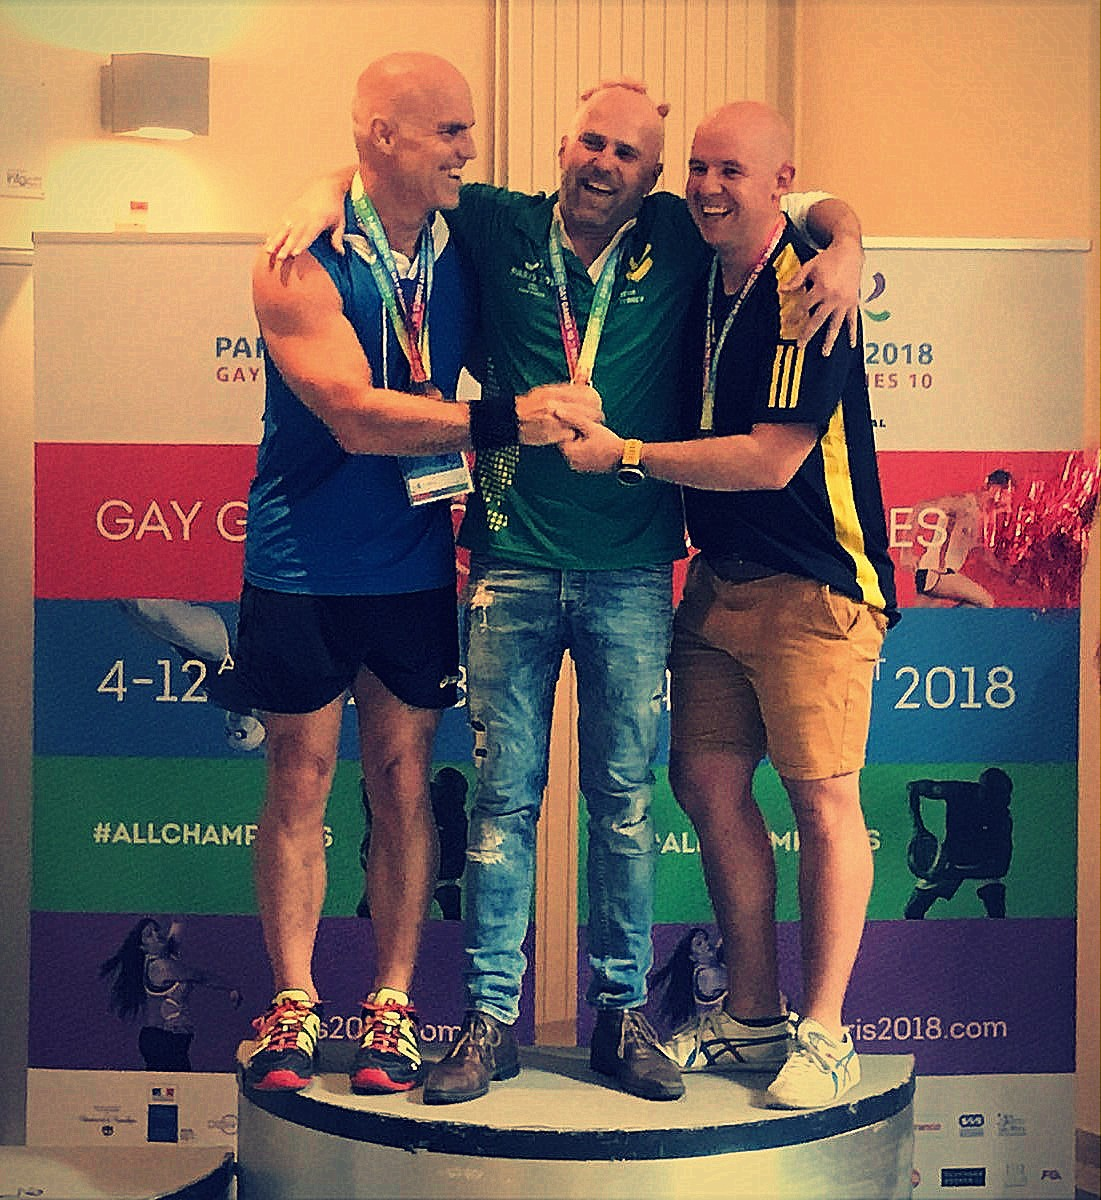 Gay Games podium hommes Level C